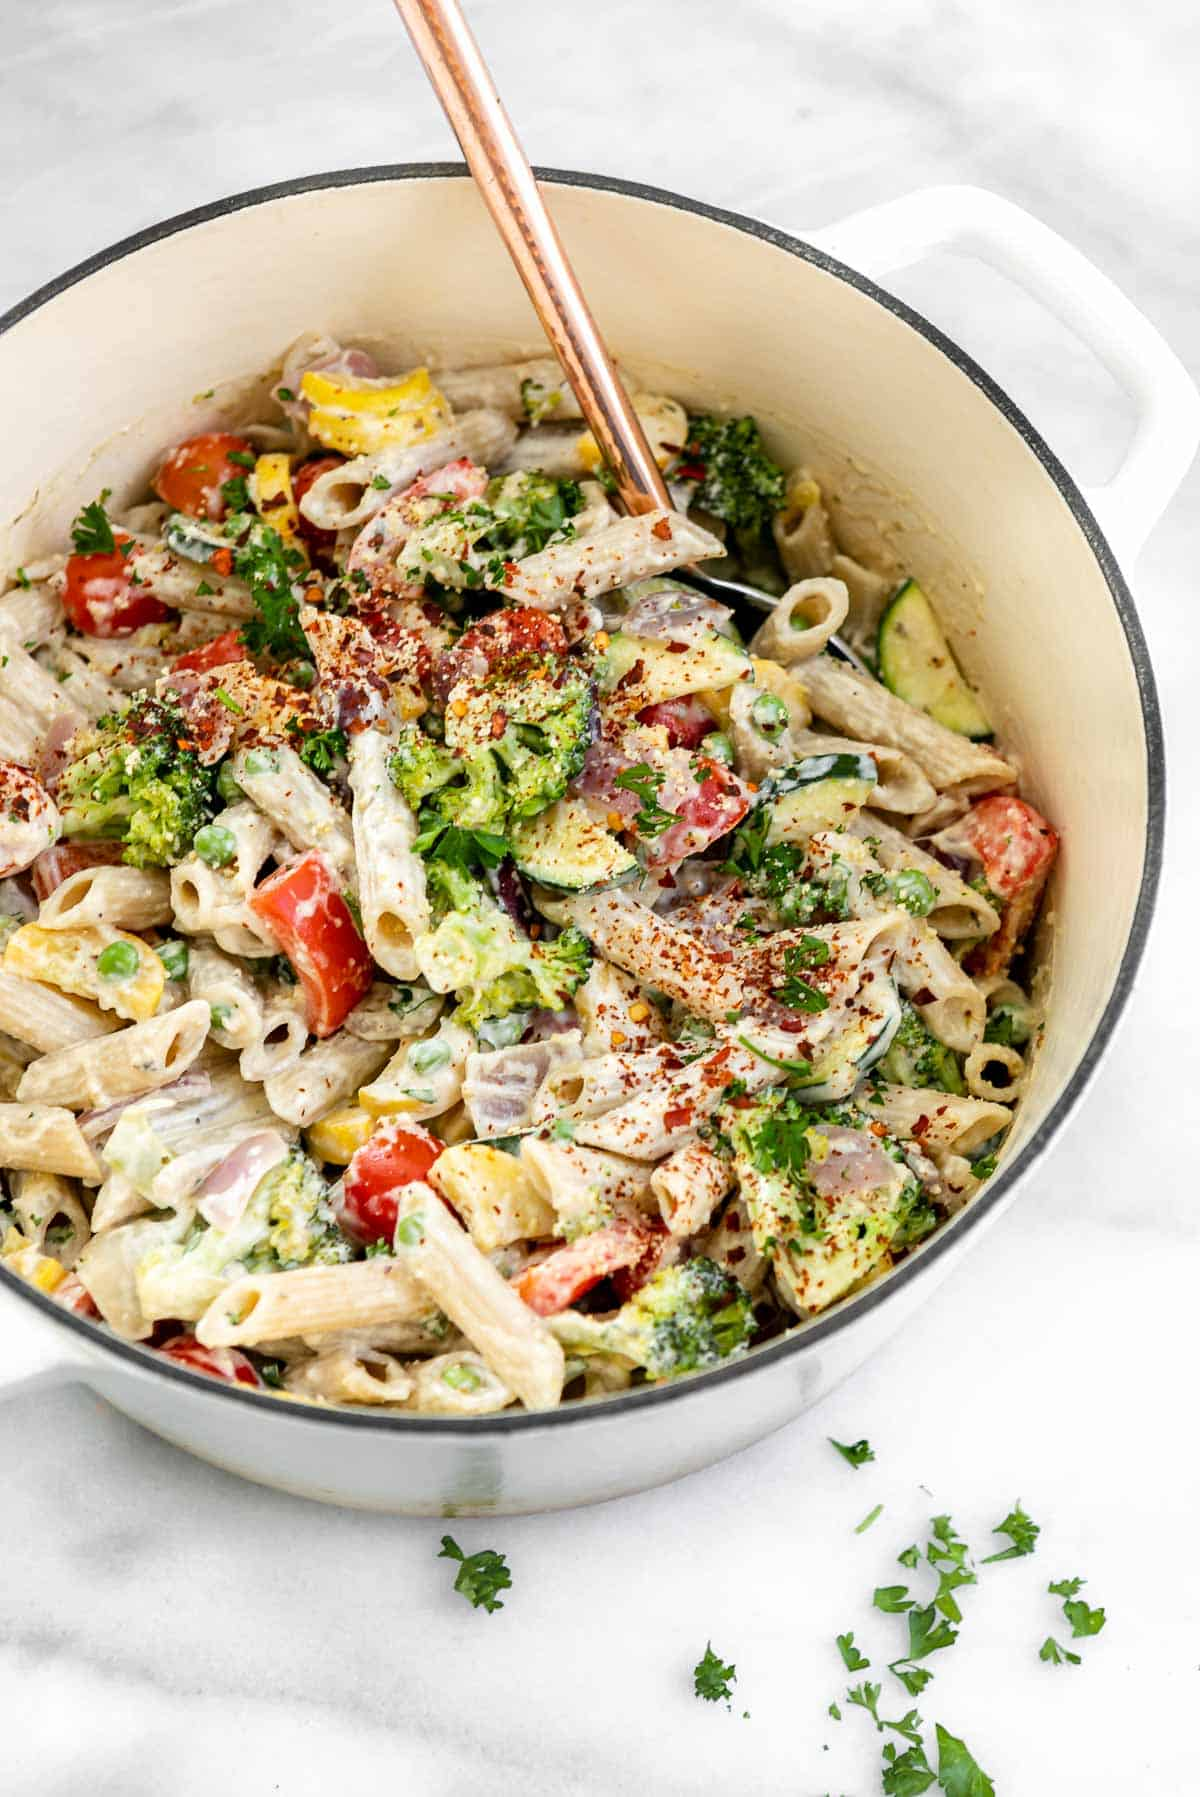 large white pot with the final vegan pasta